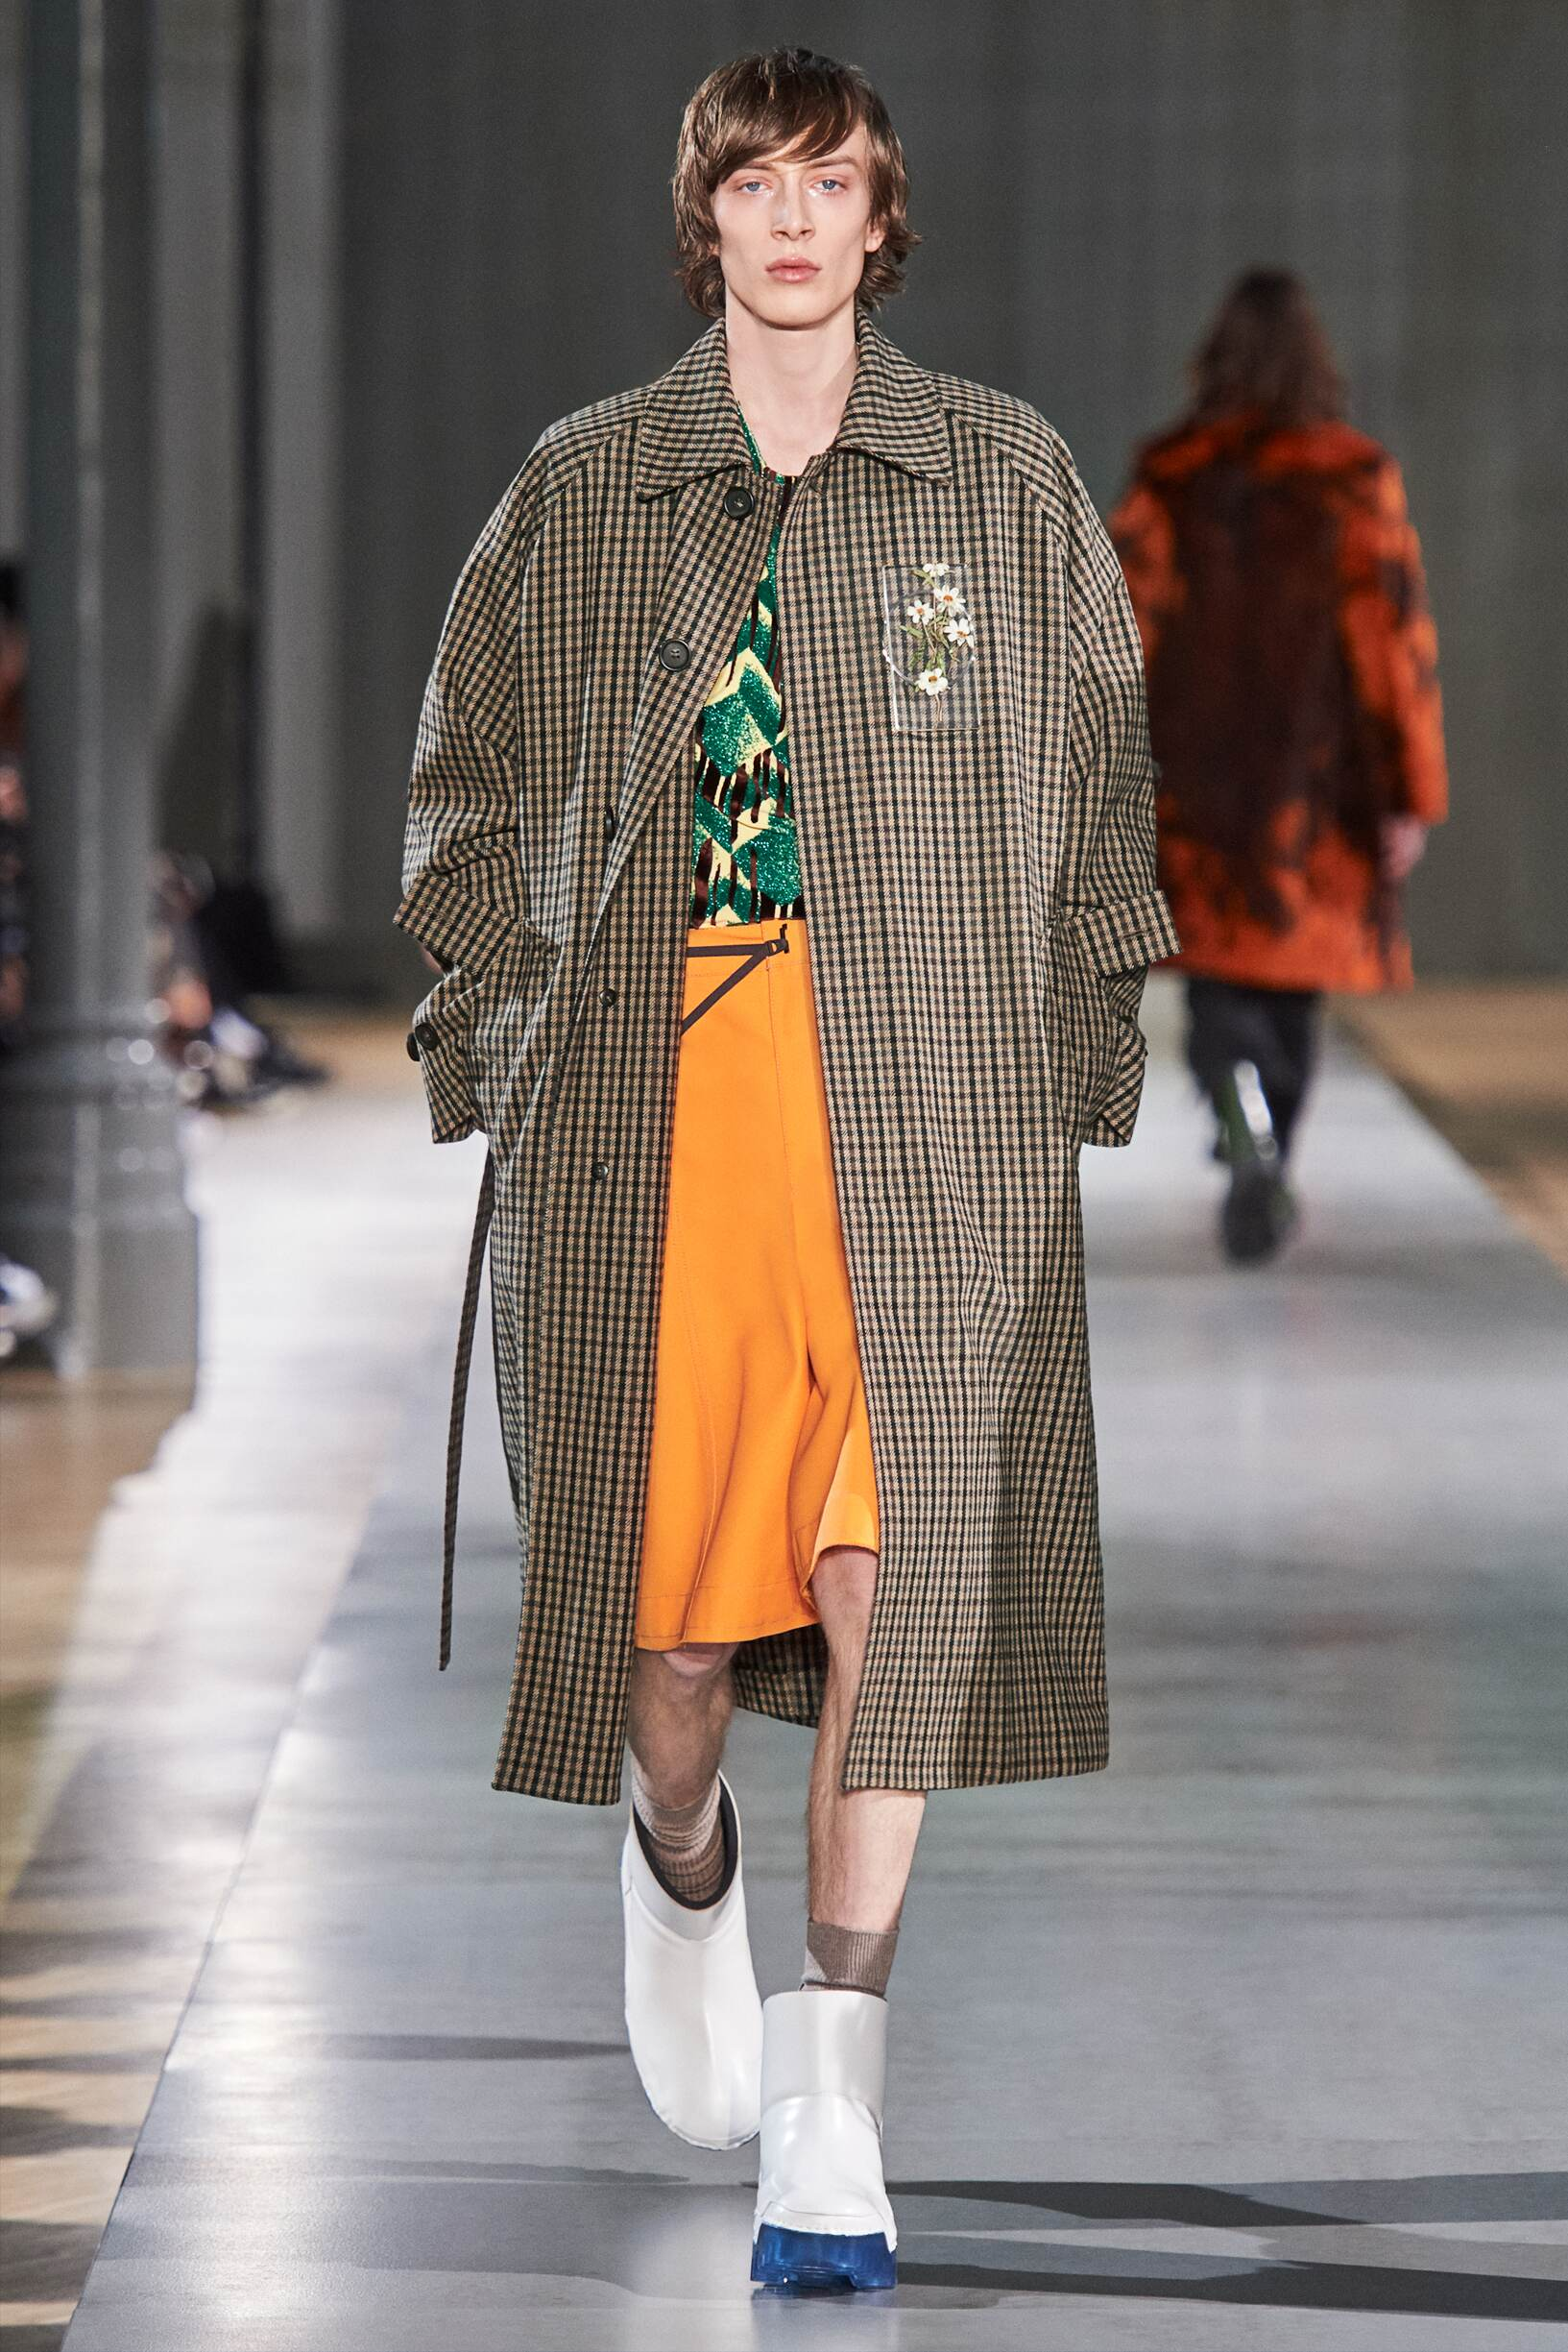 FW 2019-20 Fashion Show Acne Studios